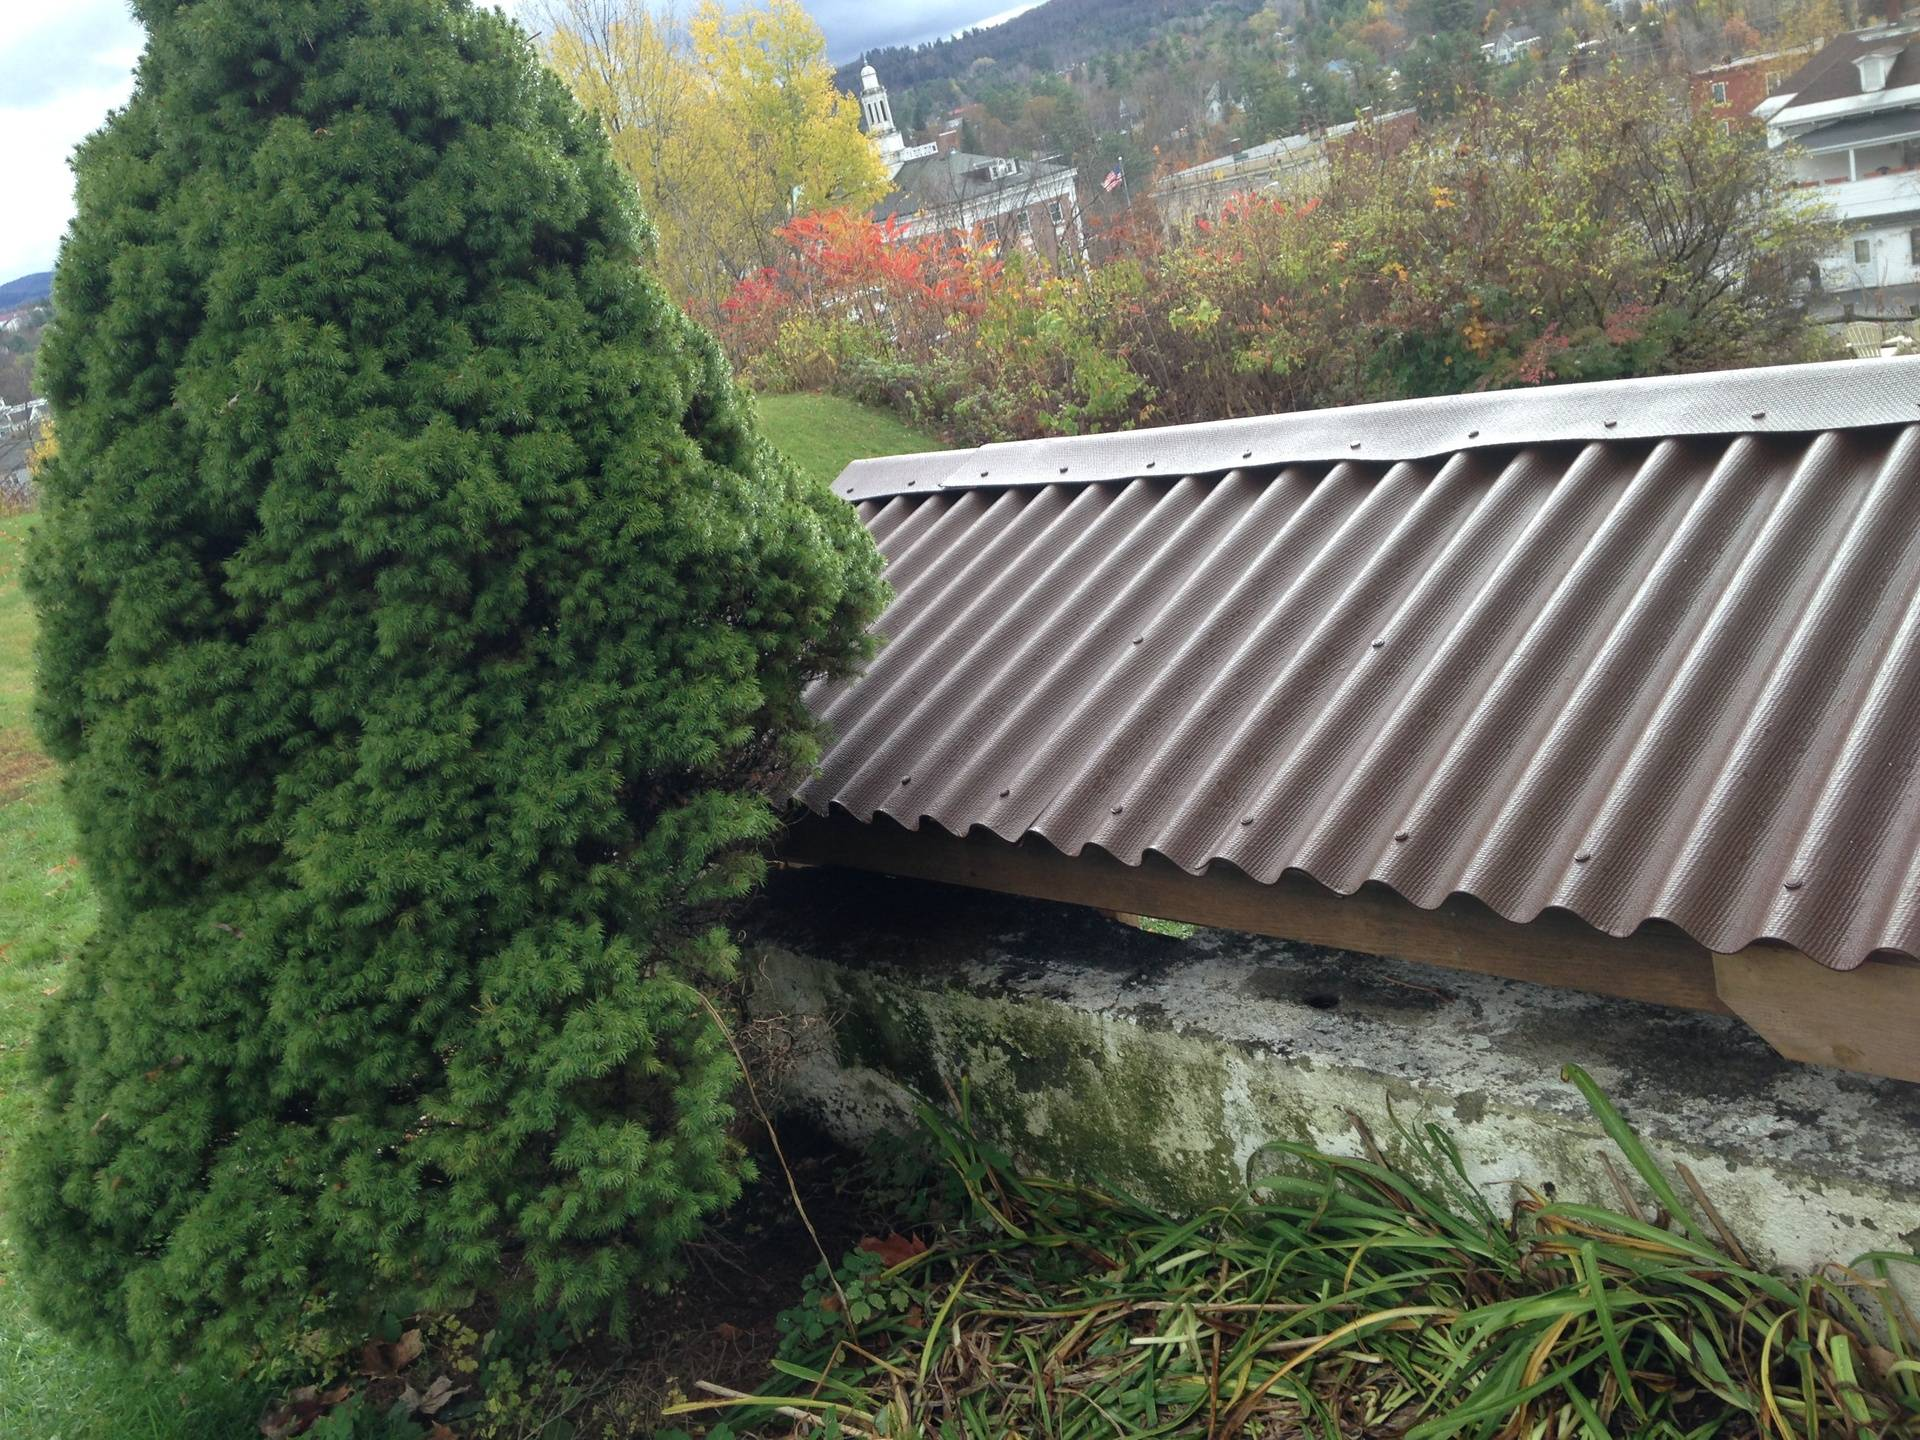 shed roof - built to clear large retaining wall